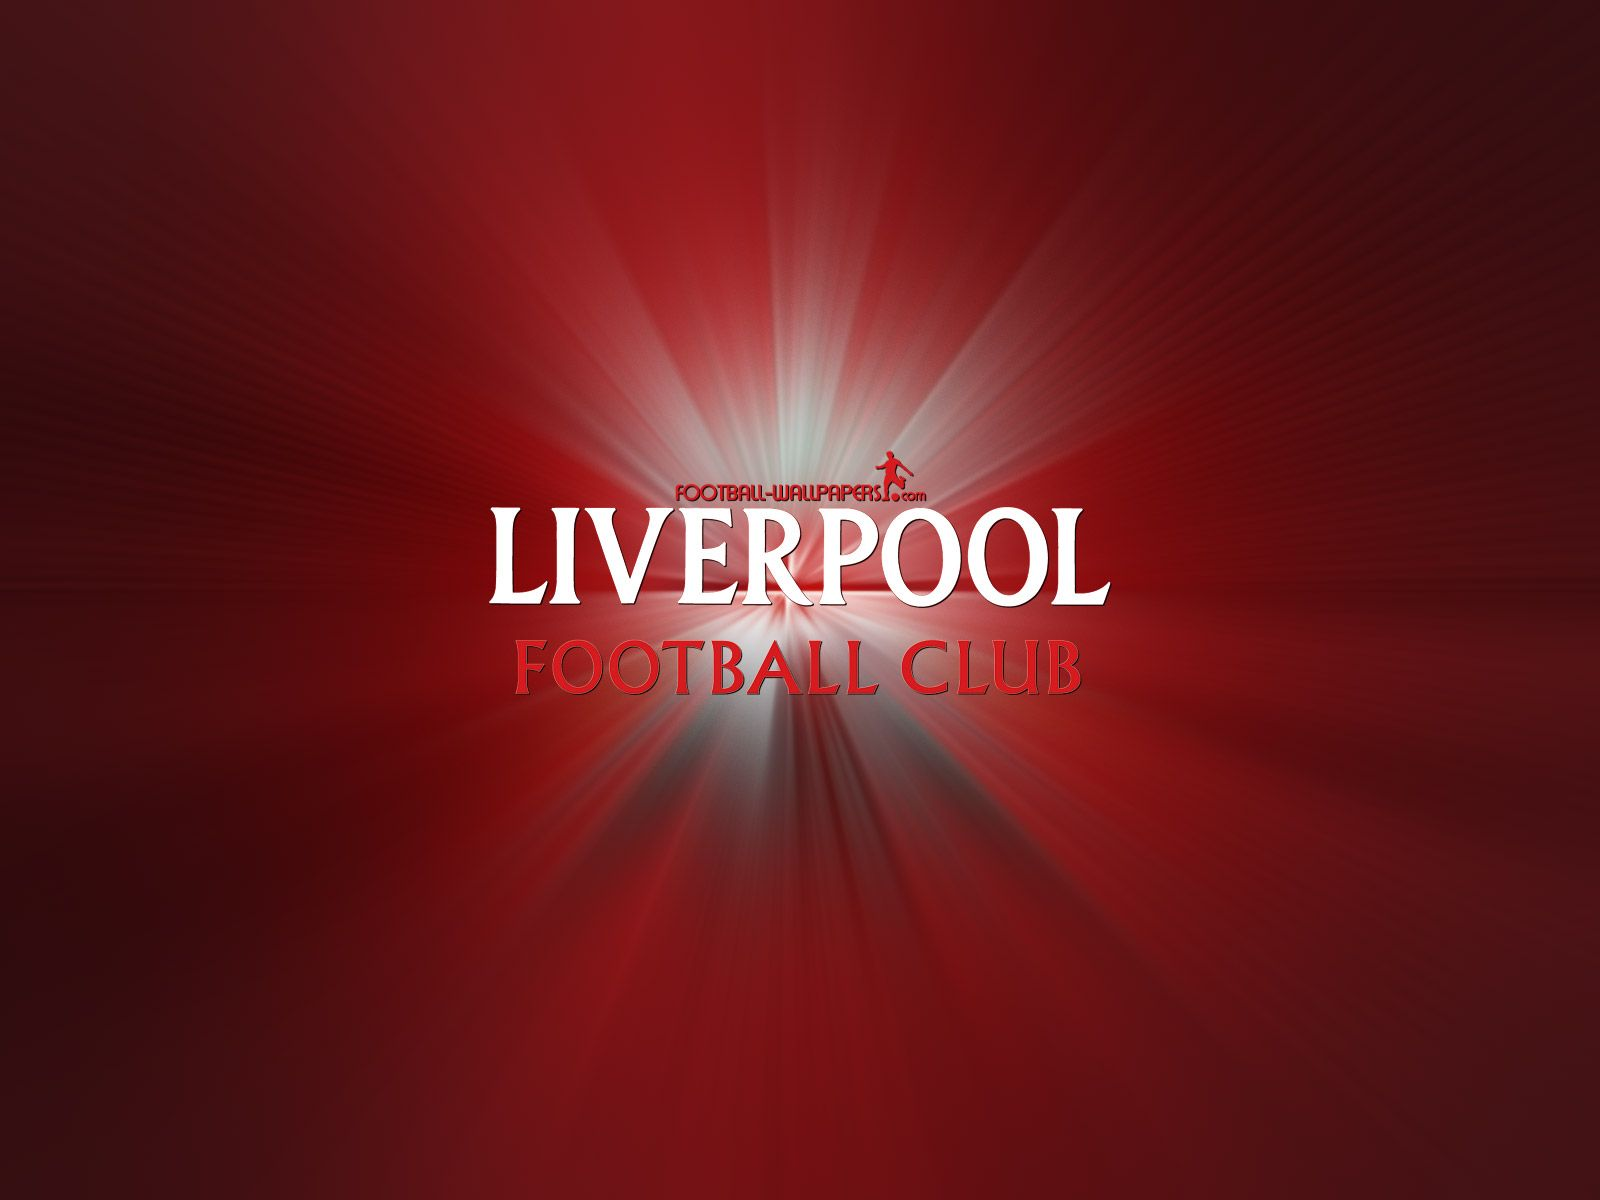 Liverpool crest wallpapers group hd wallpapers pinterest hd liverpool crest wallpapers group voltagebd Choice Image